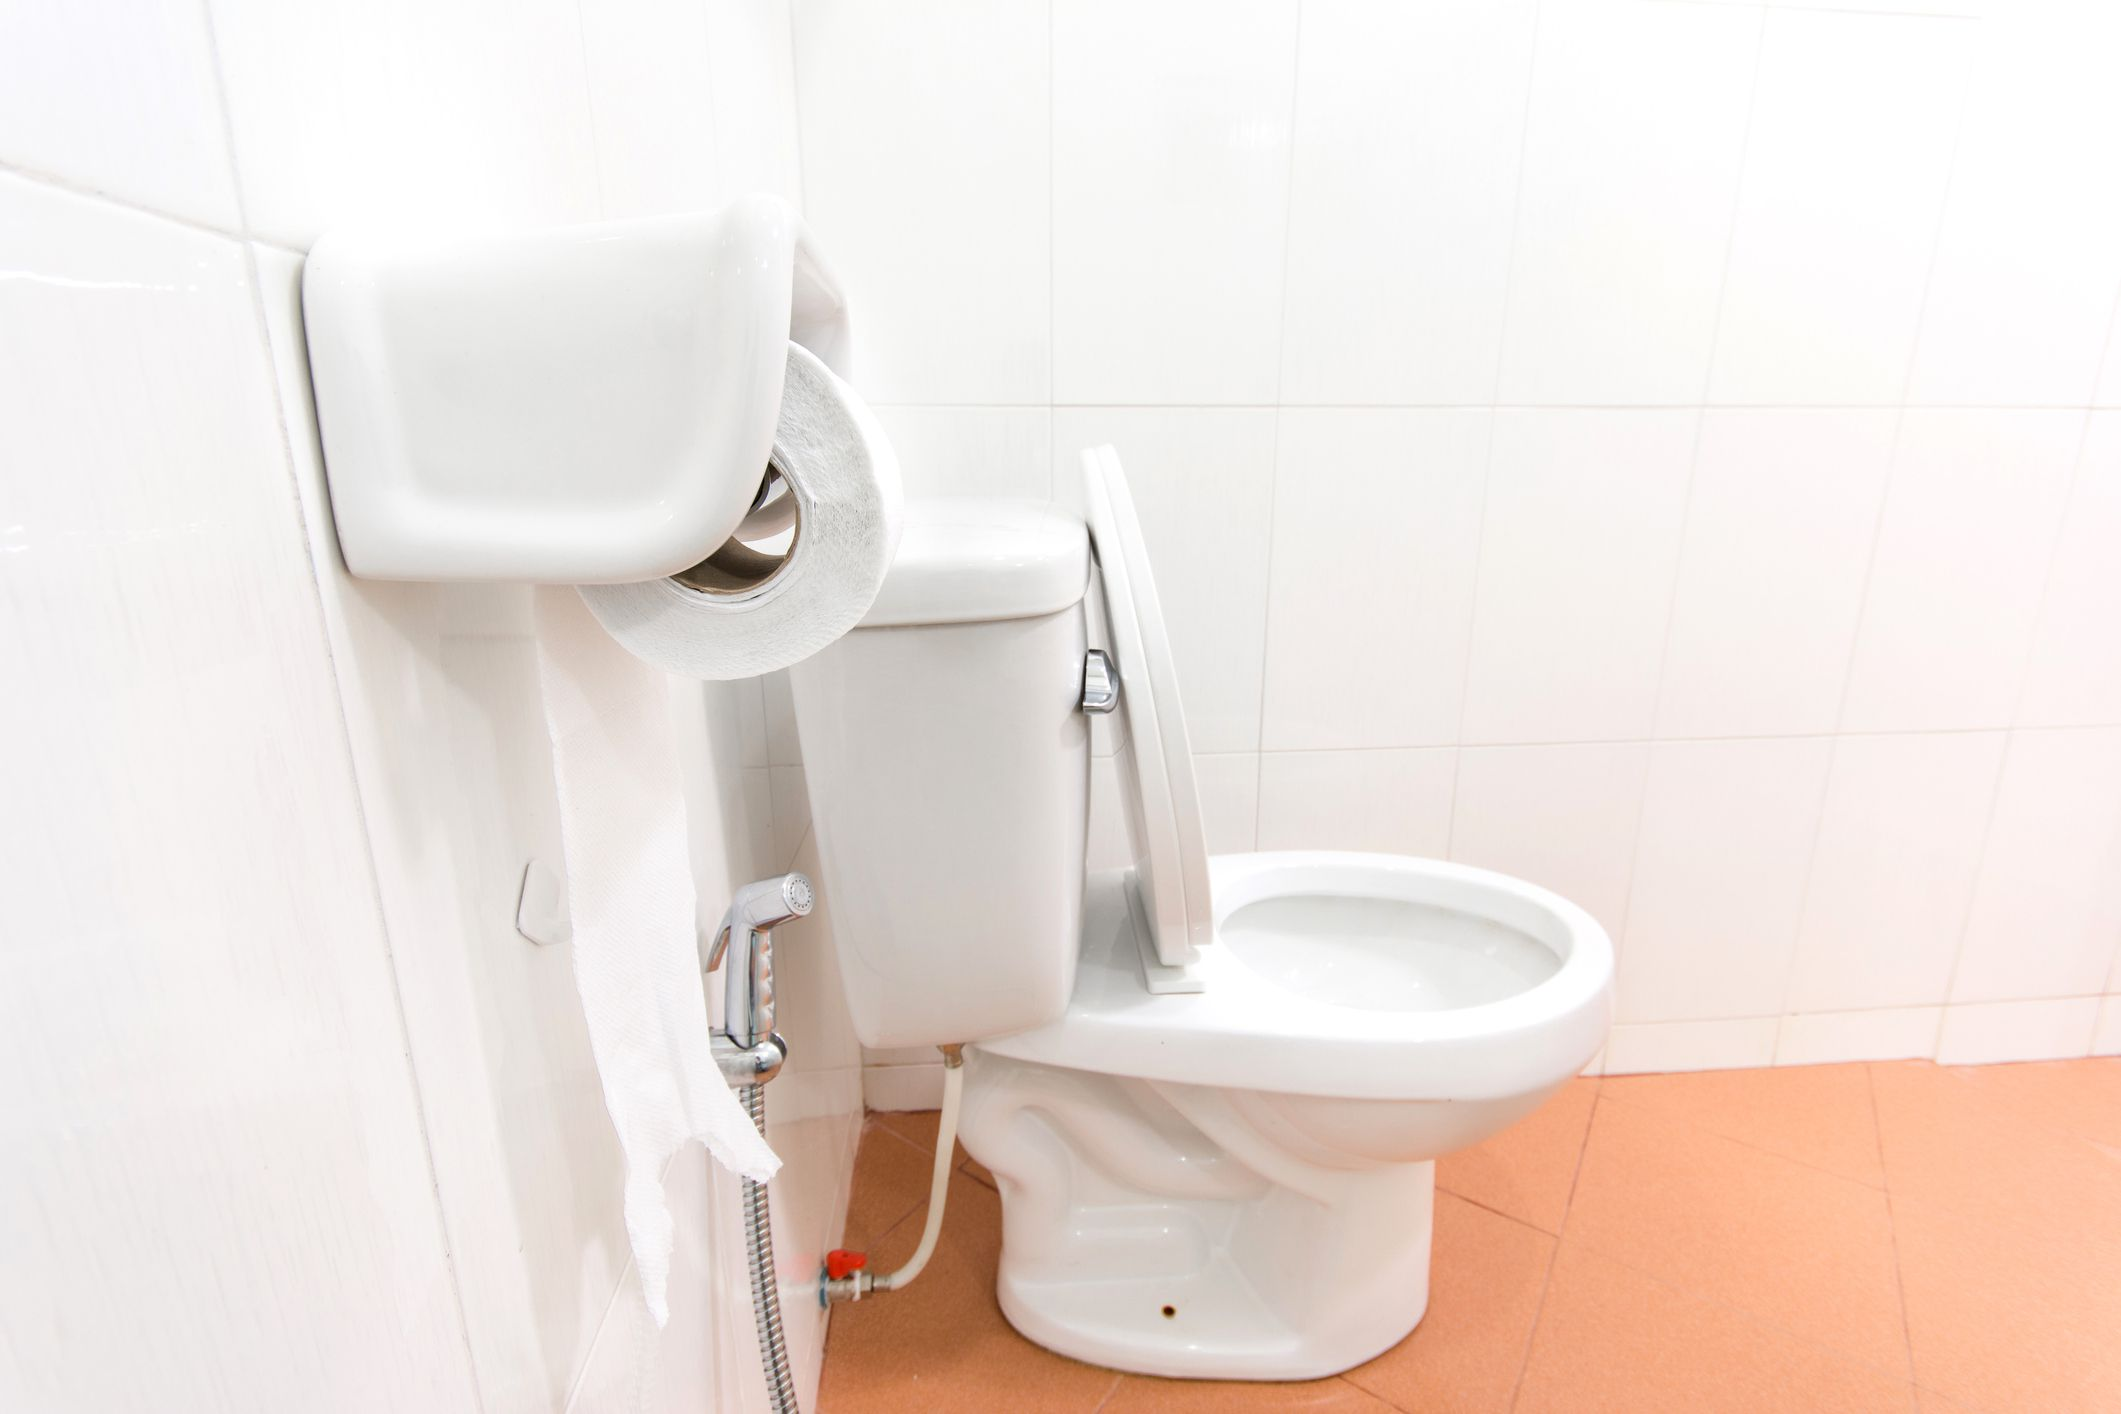 How To Drain A Toilet